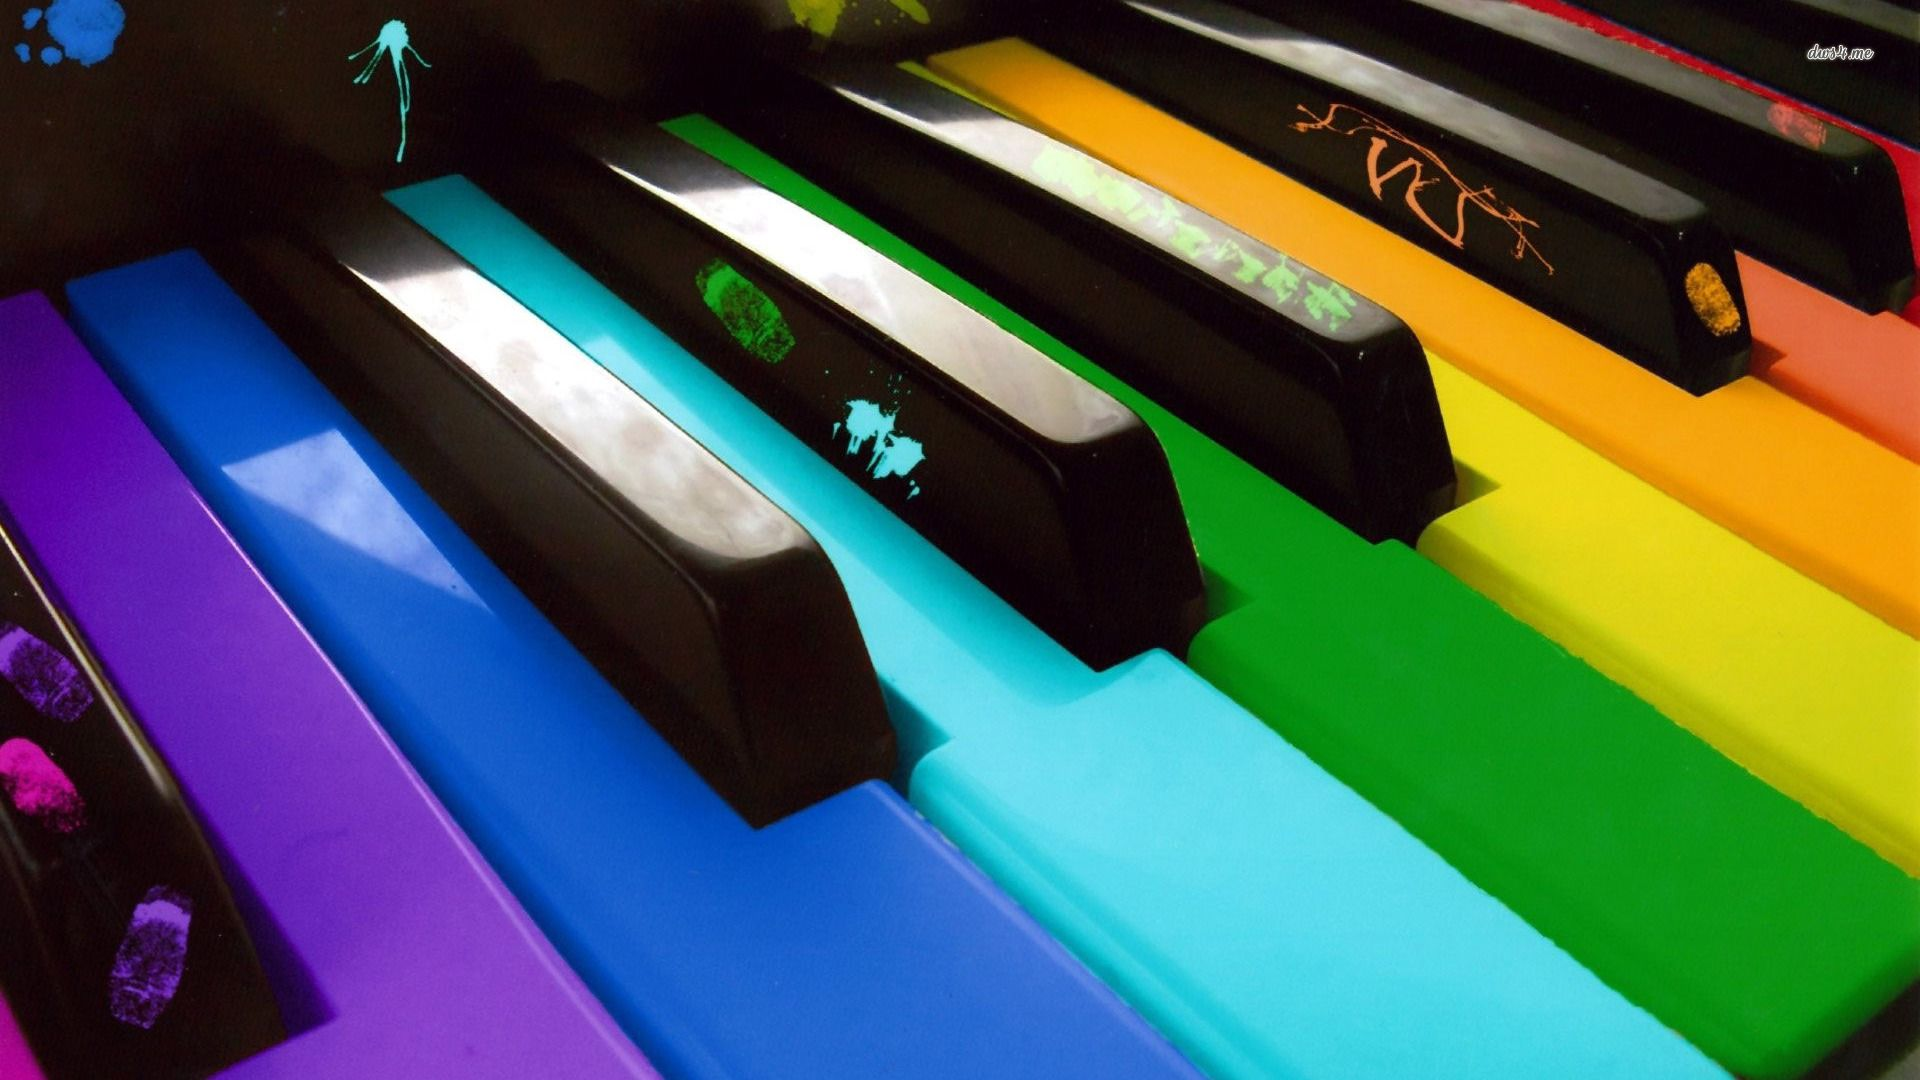 Cool Keys Keyboard Rainbow Piano Keys Cool Pictures Wallpapers Pinterest